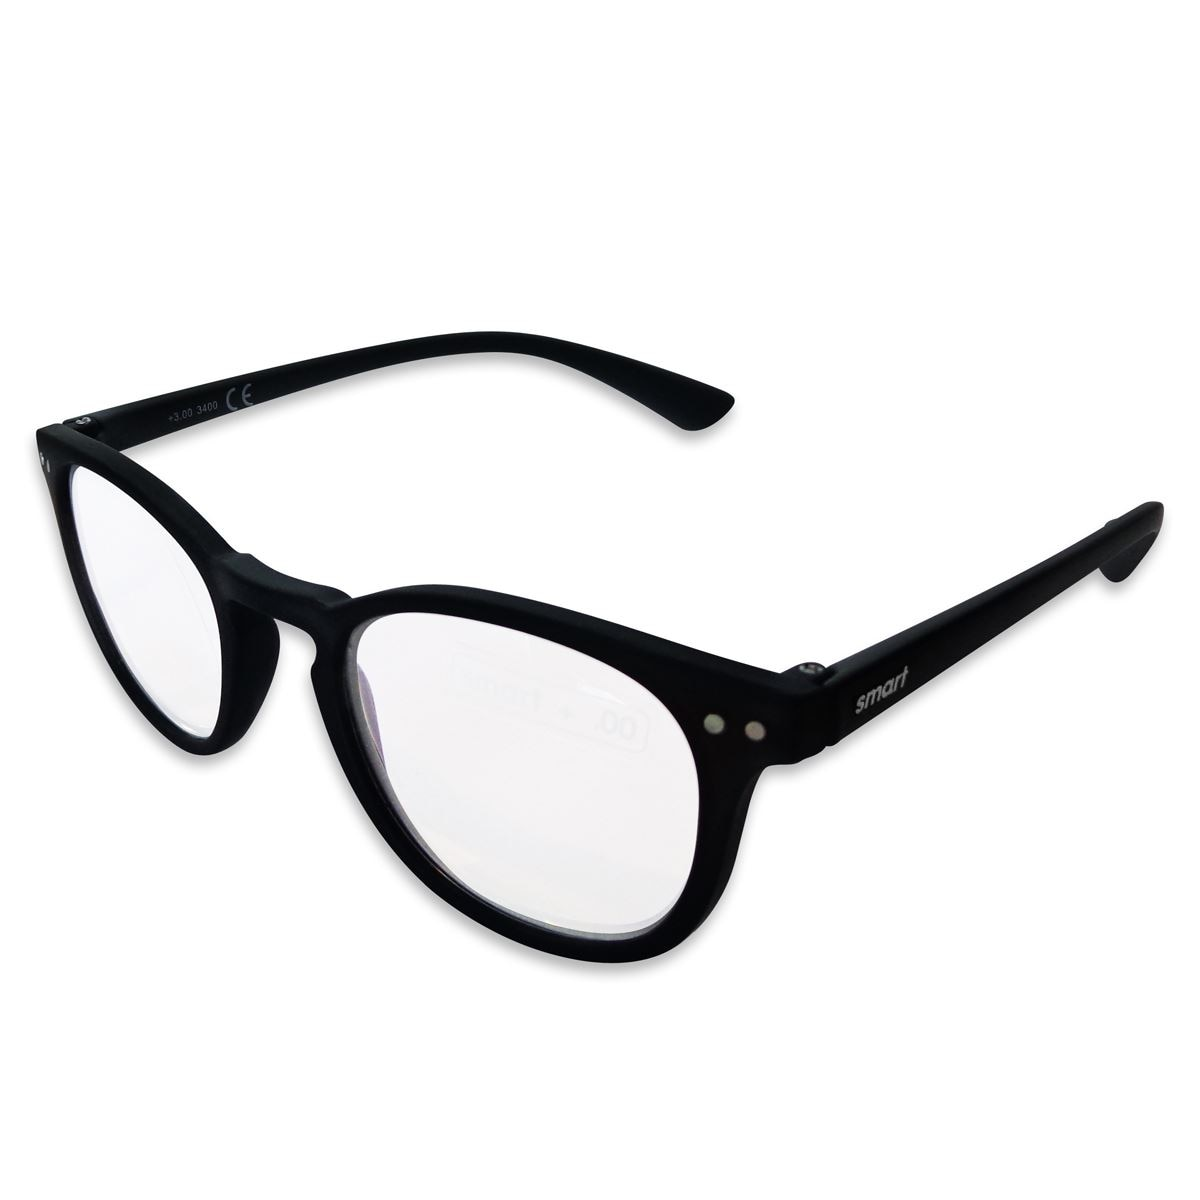 Lente pregraduado.smart Reader round matt black +2.50